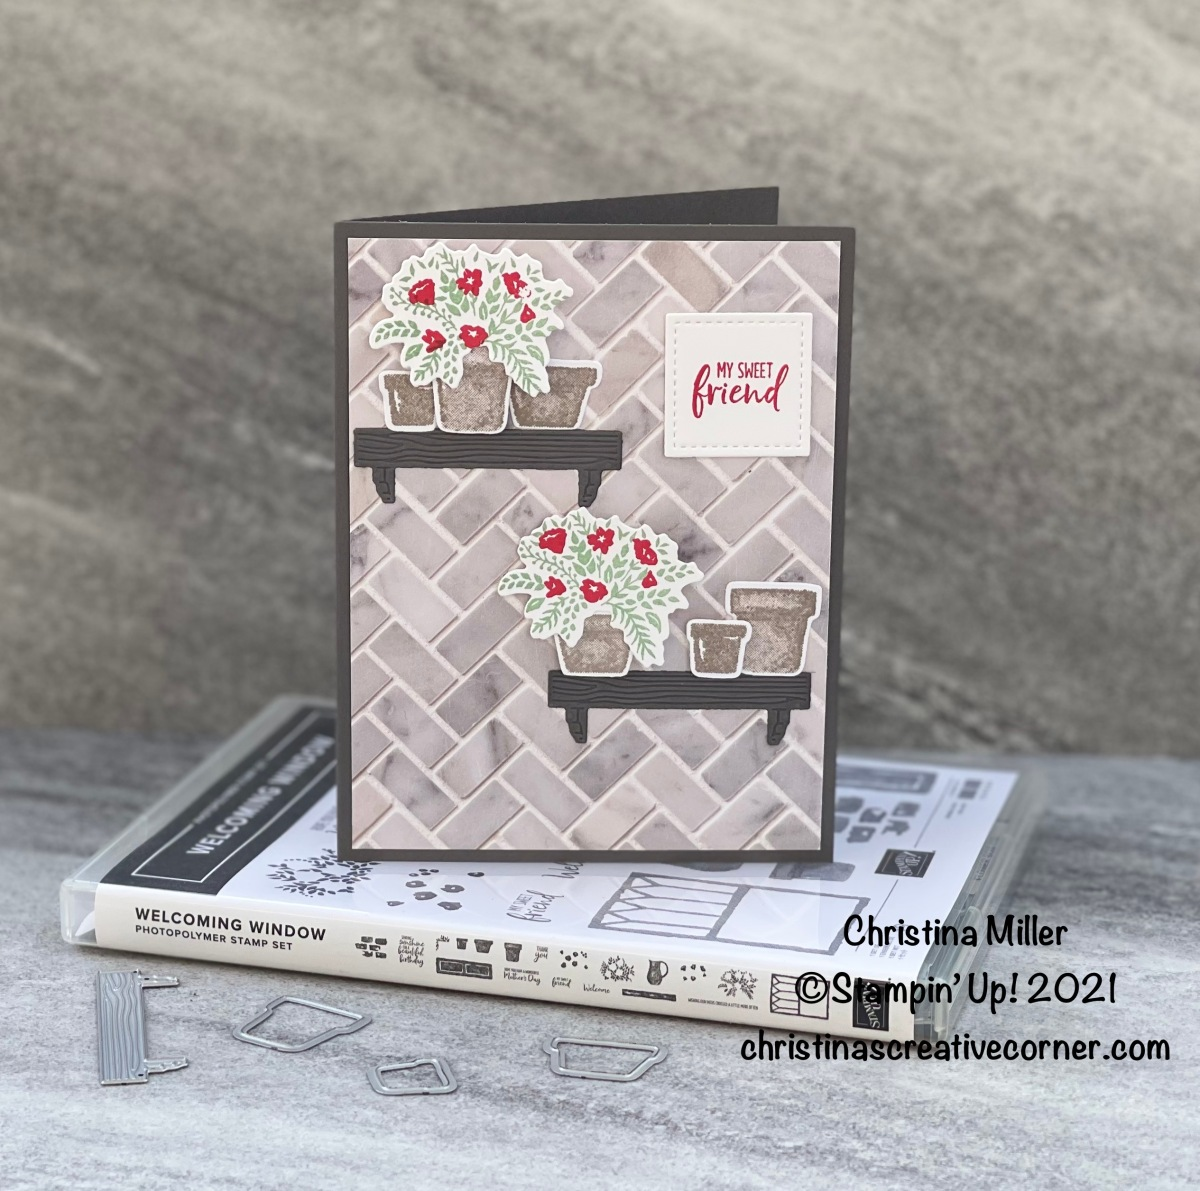 Mother's Day card for your sweet friend!